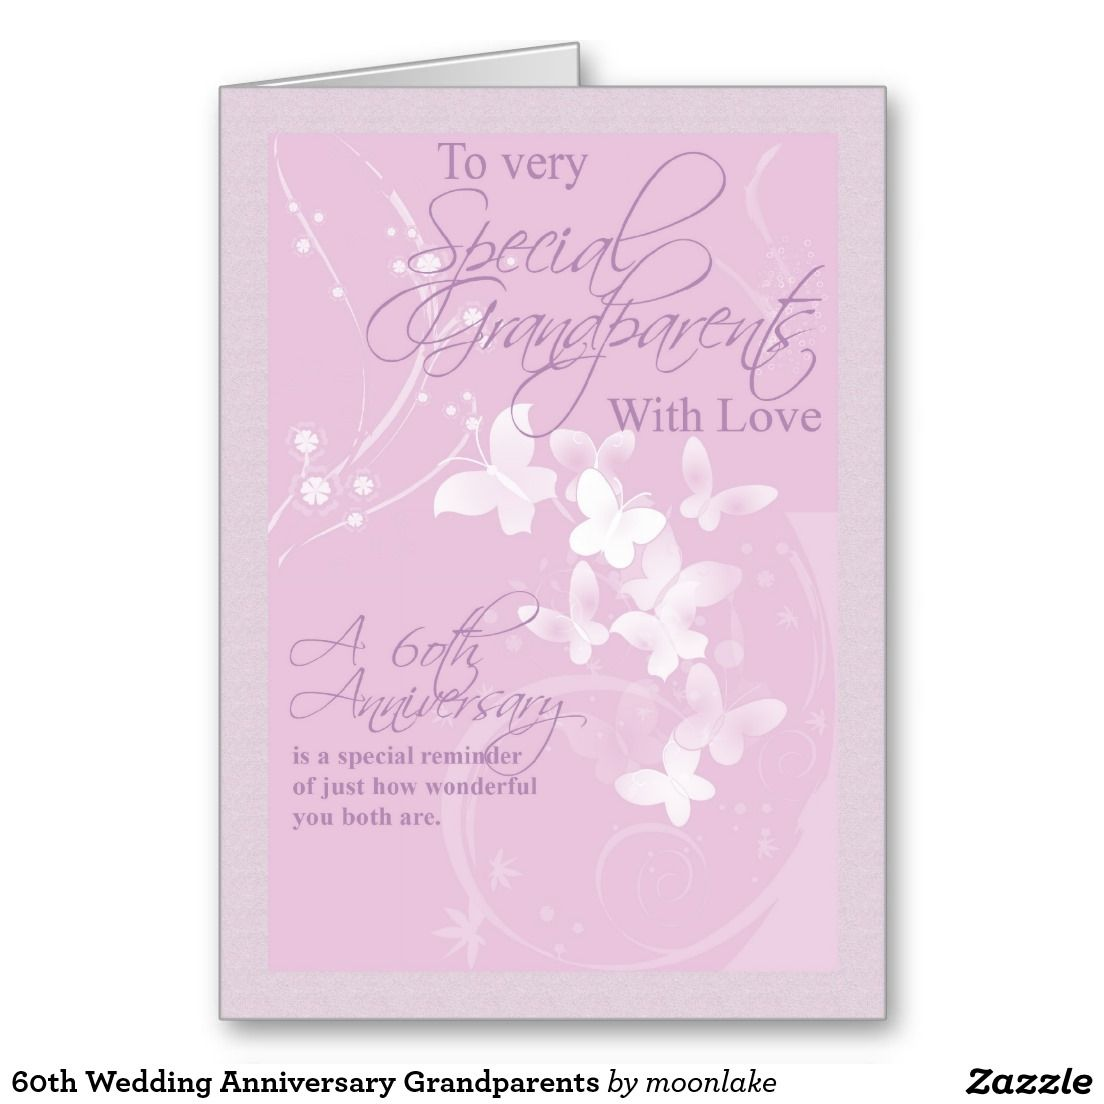 60th wedding anniversary grandparents greeting card greeting cards 60th wedding anniversary grandparents greeting card kristyandbryce Choice Image